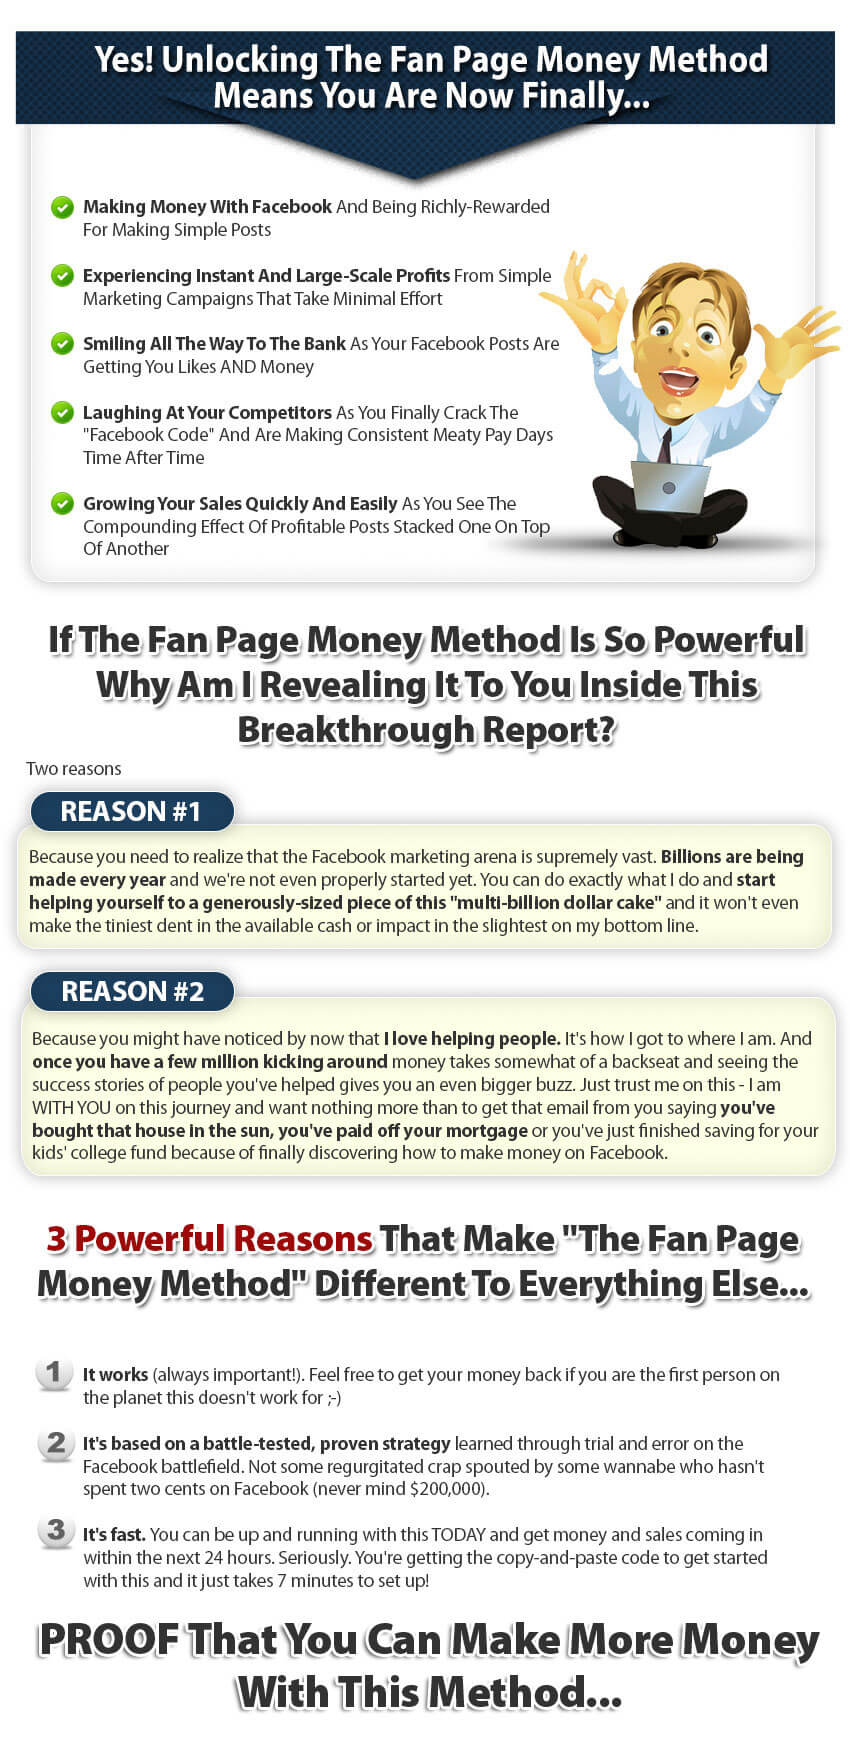 Fan Page Money Method5